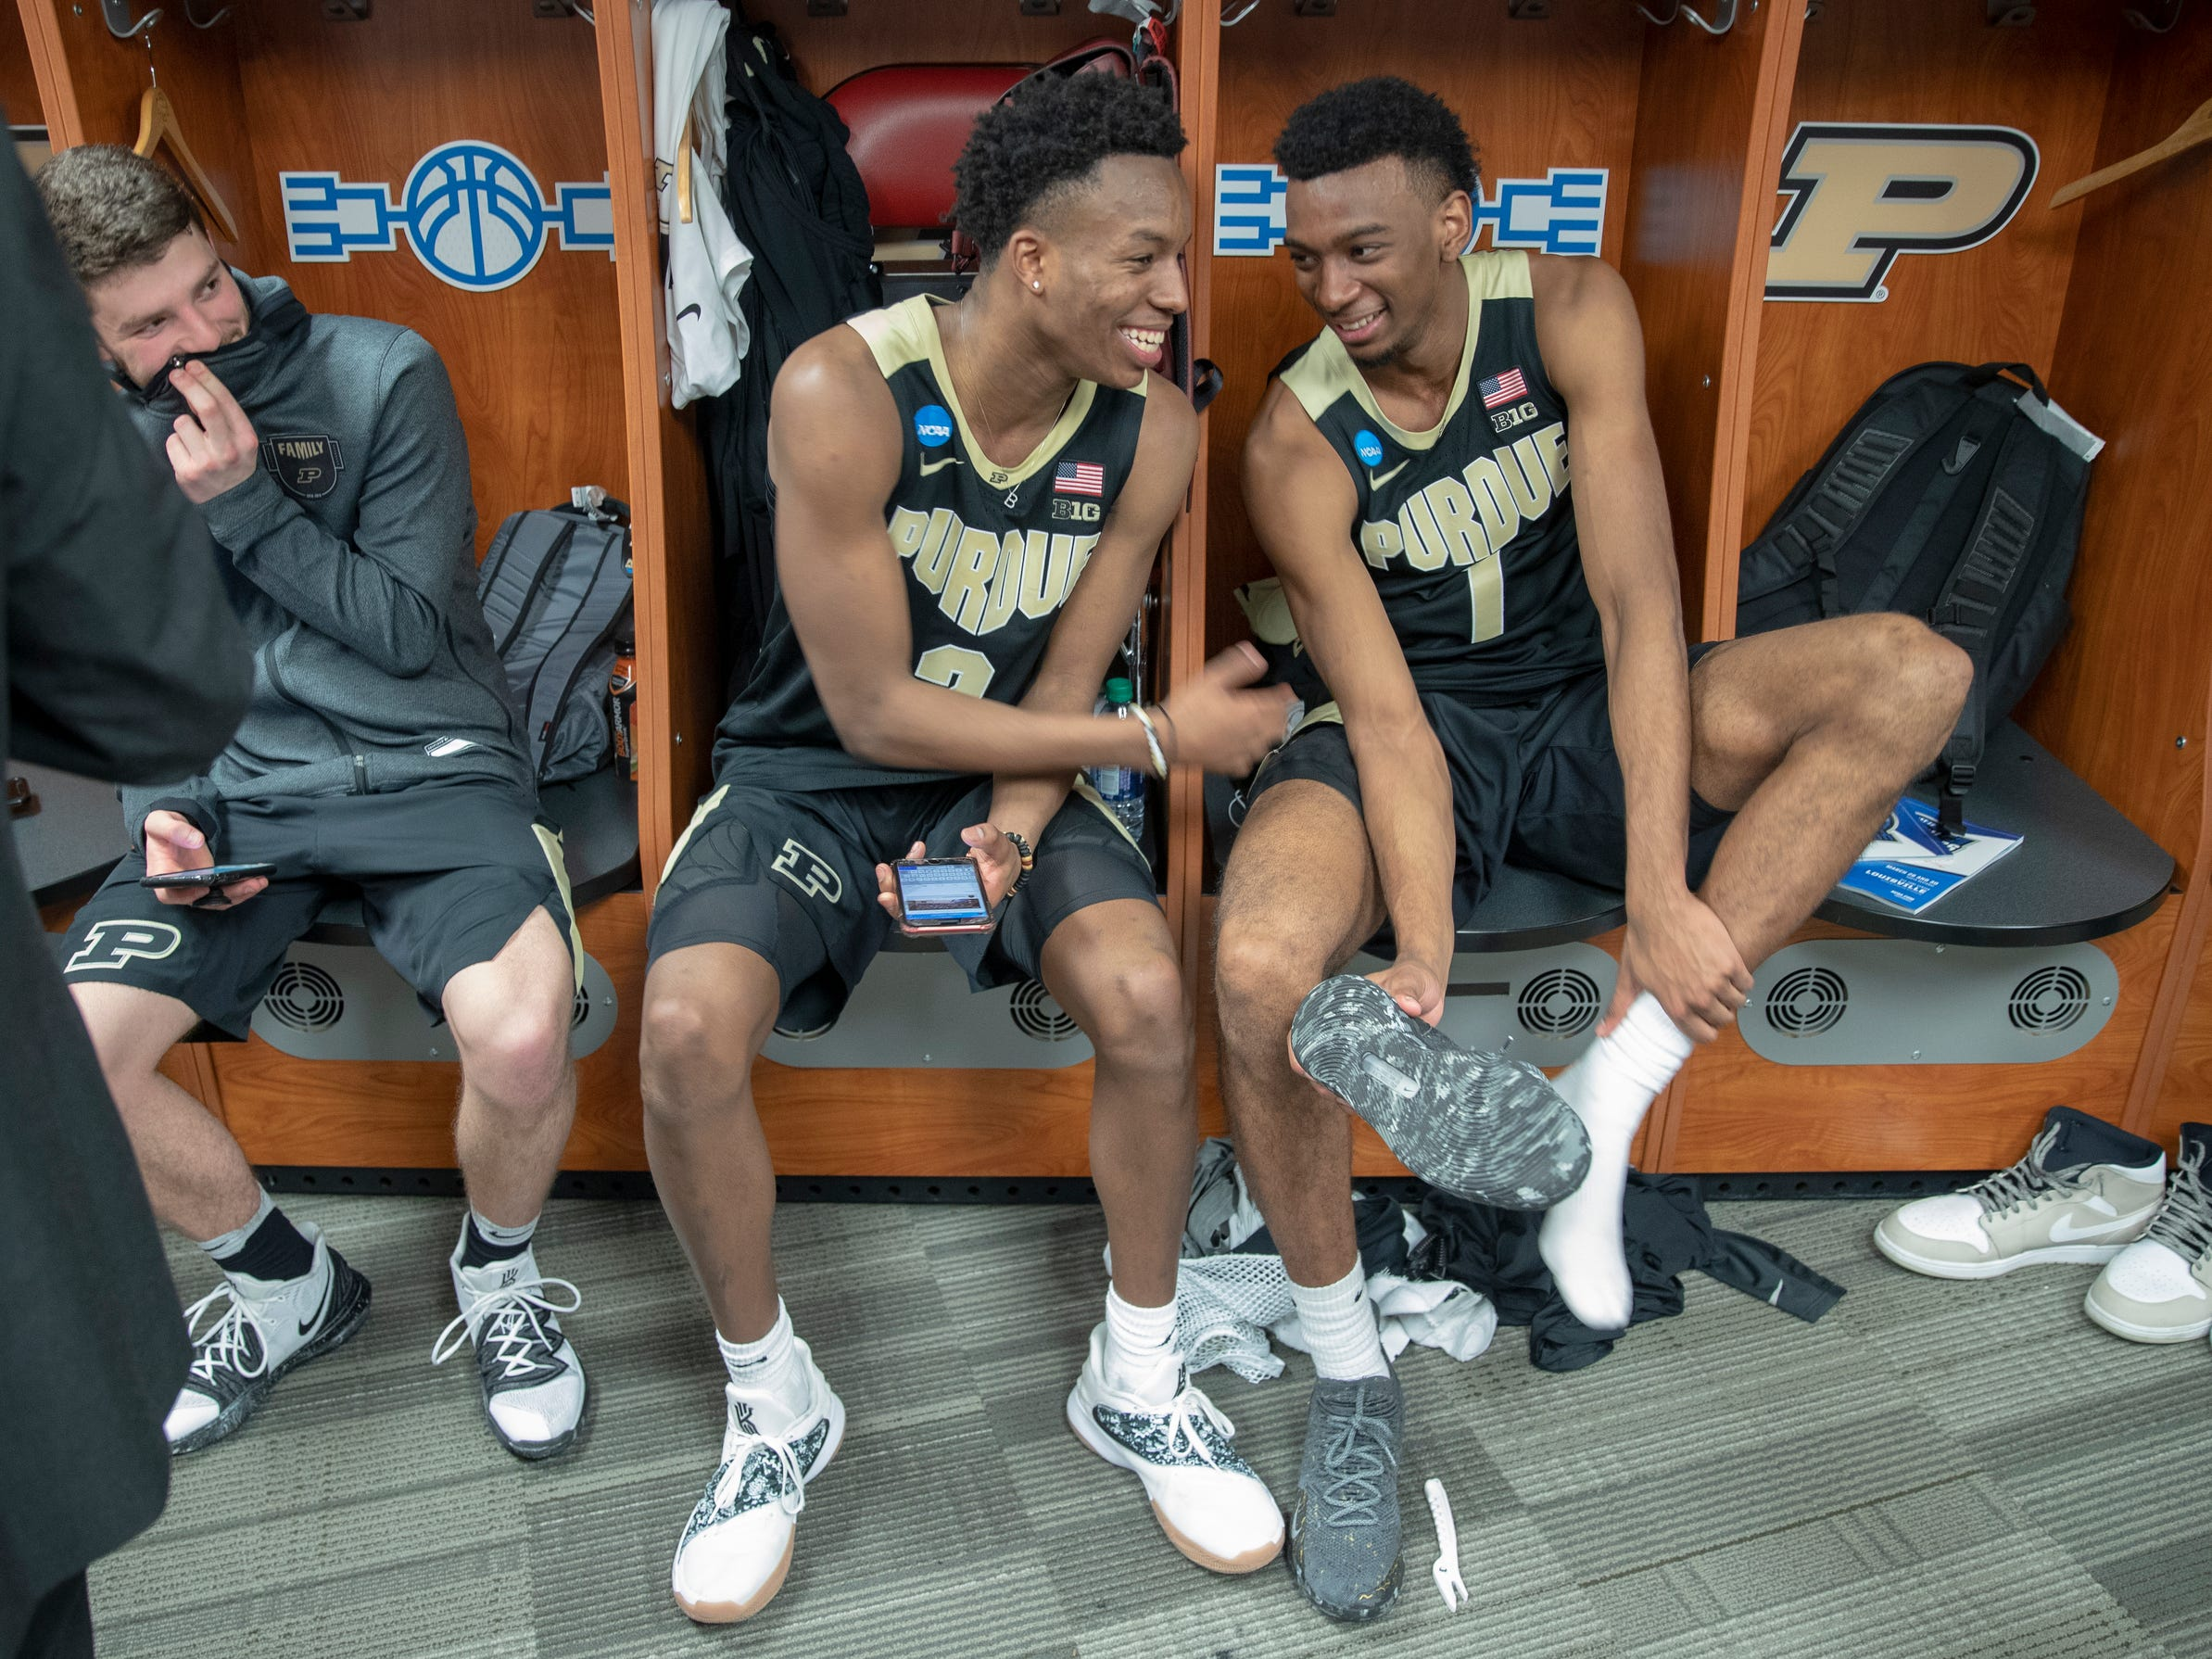 Eric Hunter Jr. of the Purdue Boilermakers (middle), smiles with Aaron Wheeler in the locker room after their victory over Tennessee, NCAA Division 1 Men's Basketball 'Sweet Sixteen' game, KFC Yum Center, Louisville, Thursday, March 28, 2019. Purdue won 99-94.